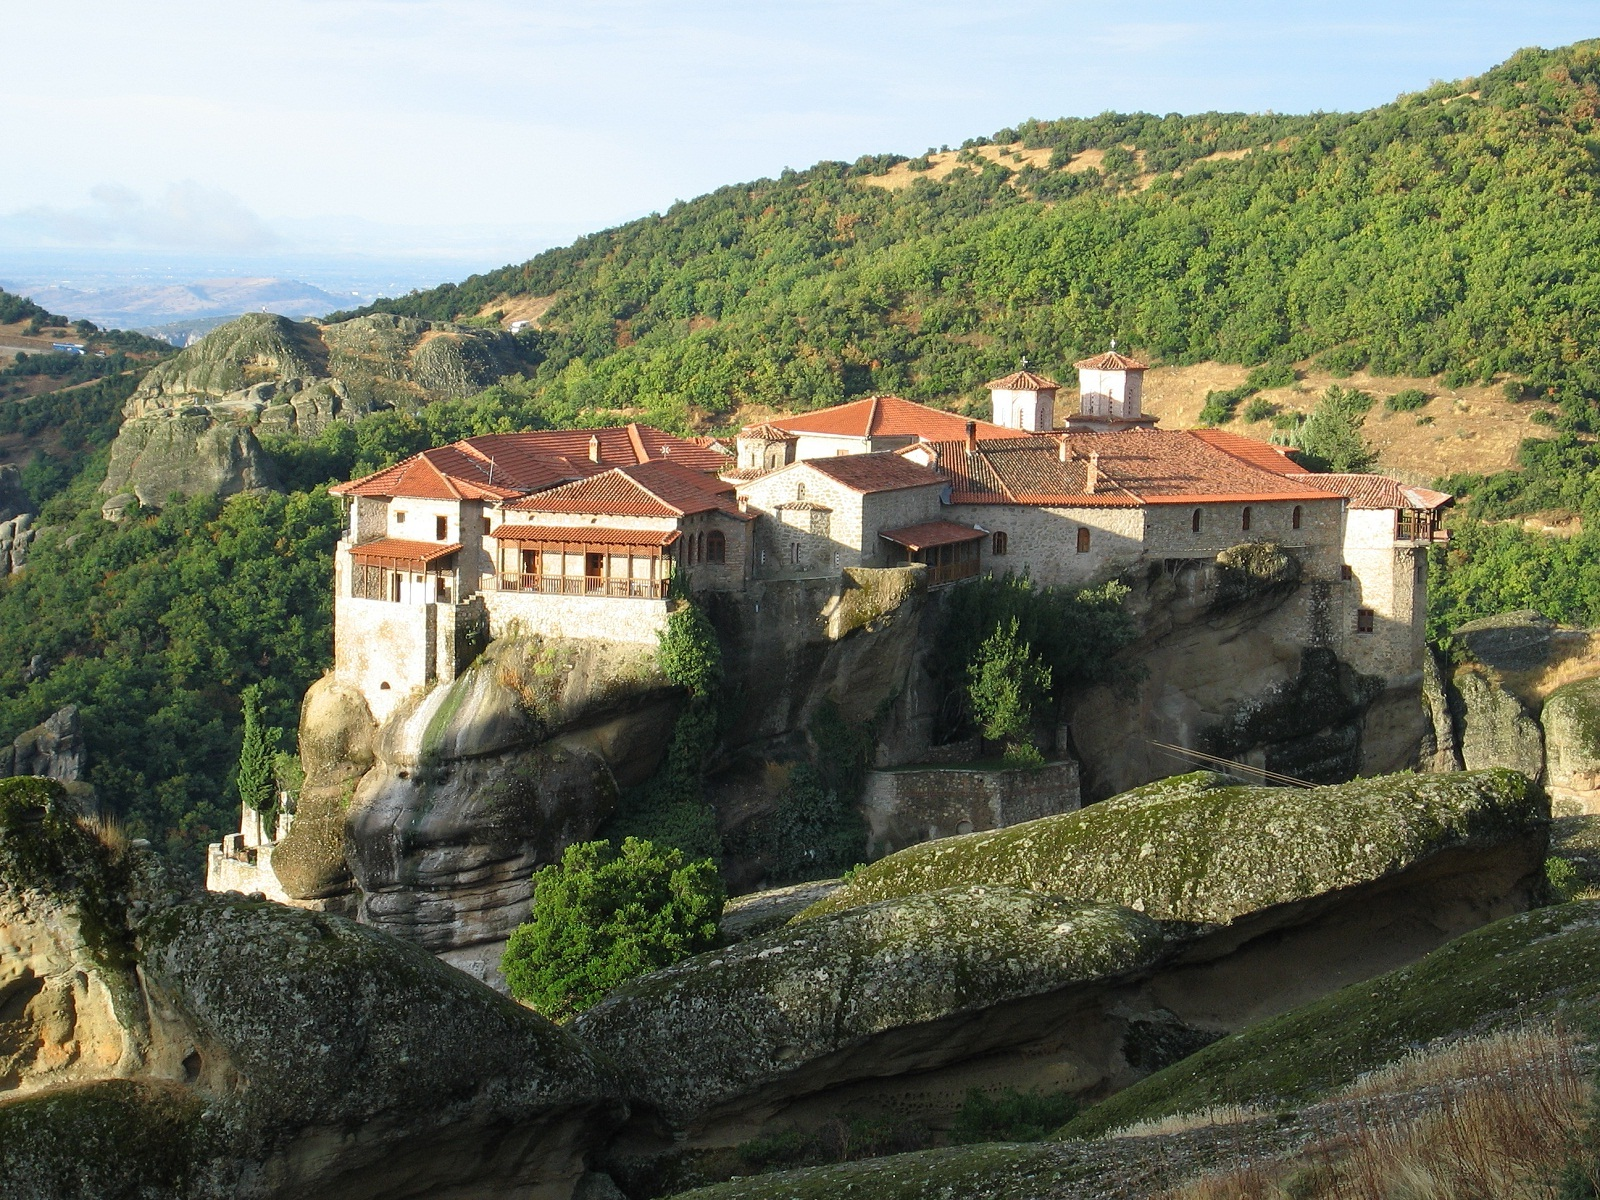 Meteora – Pinnacles of History  Search of Life